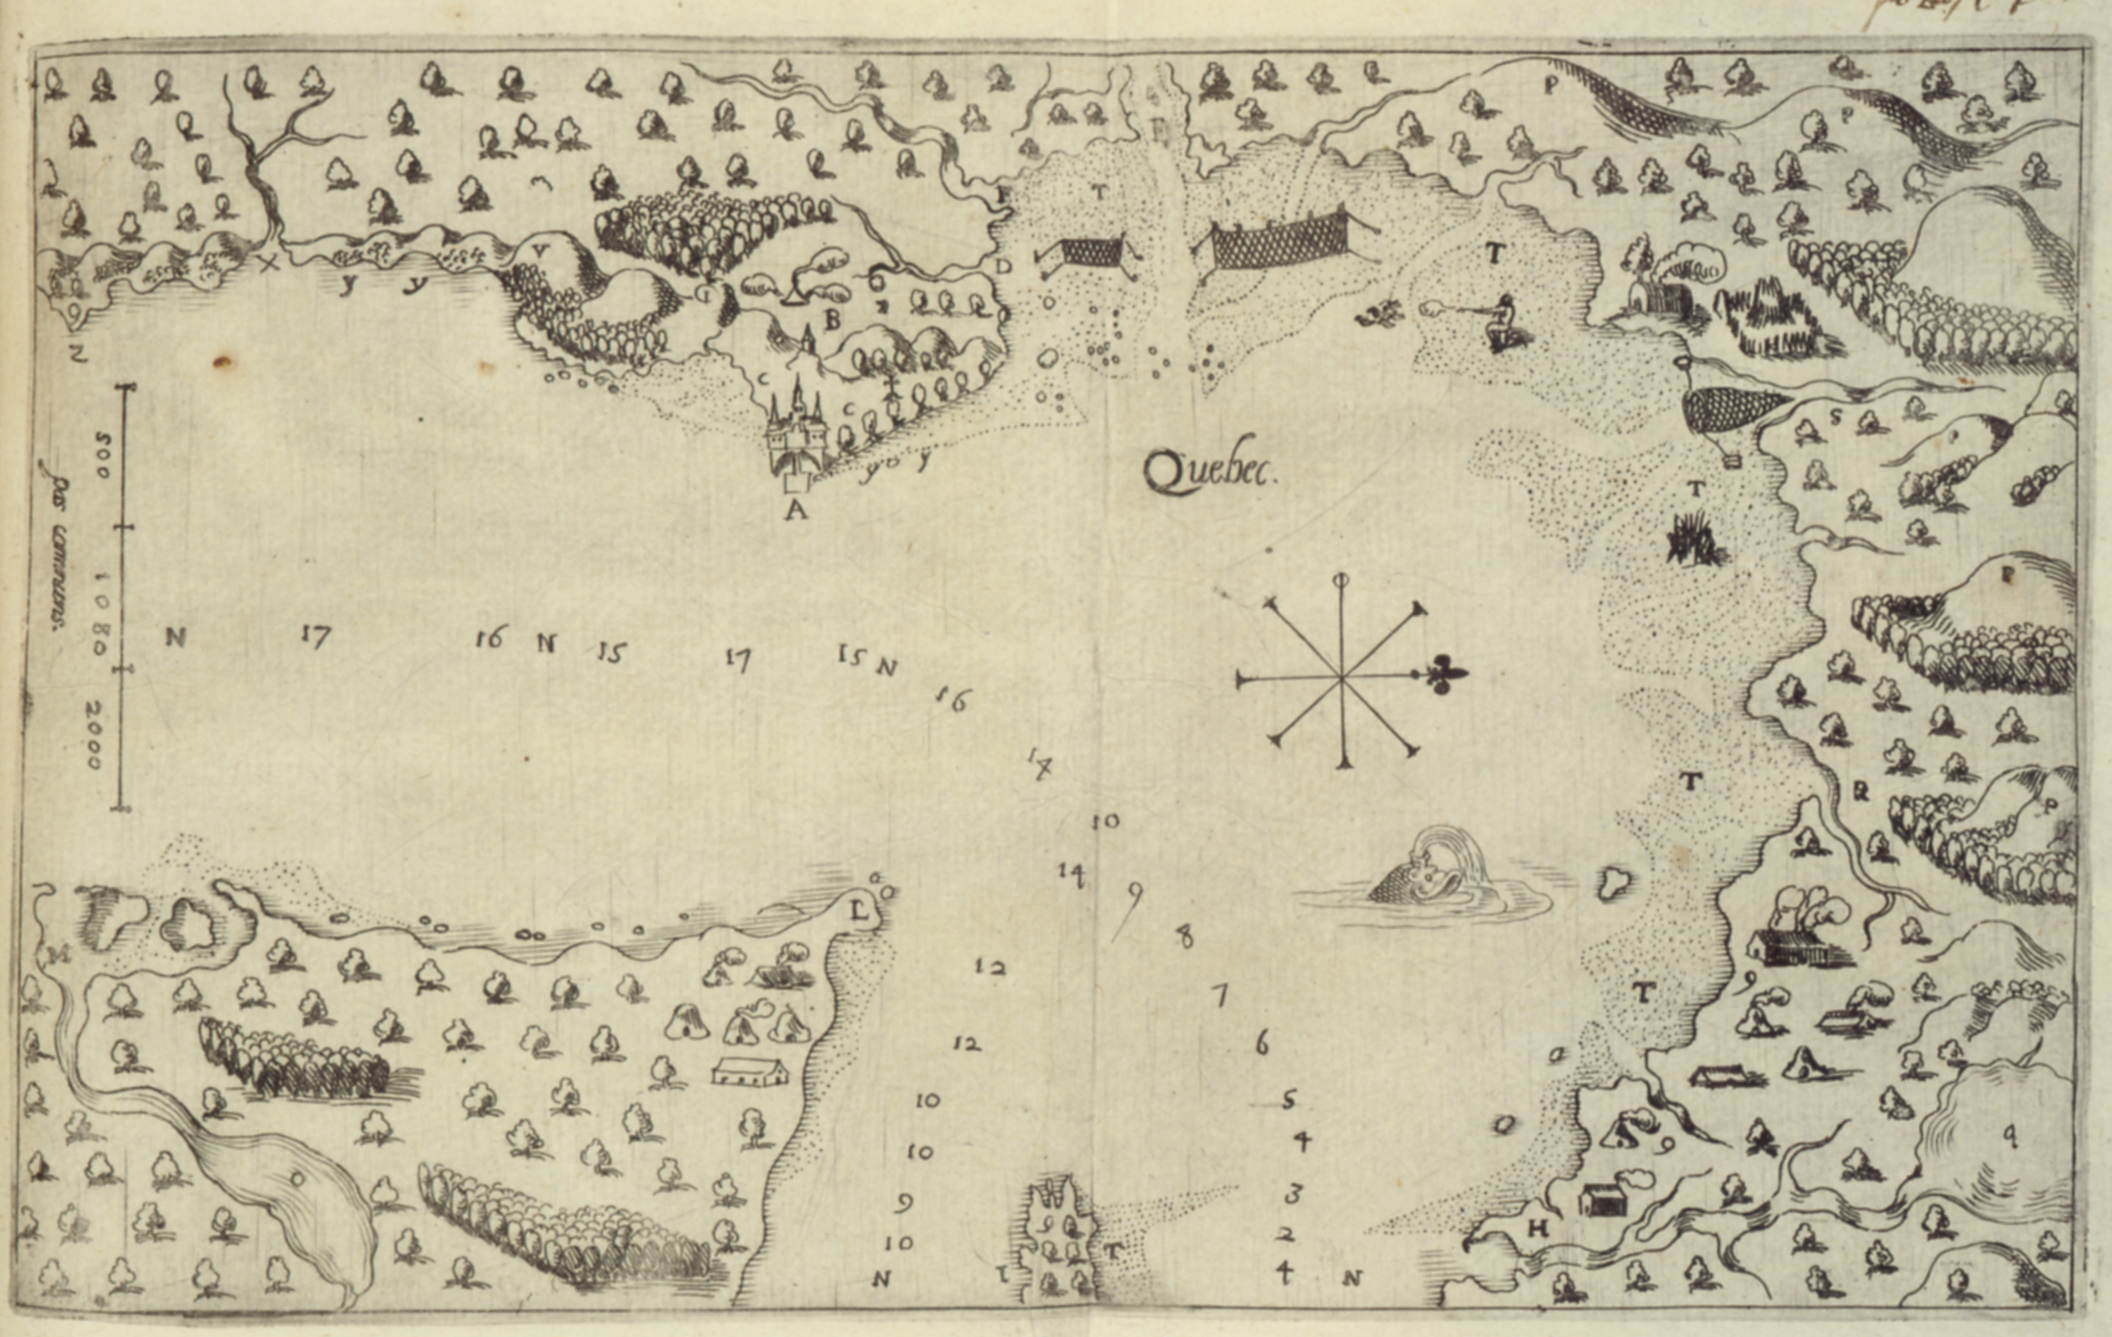 Map of Quebec City, 1608